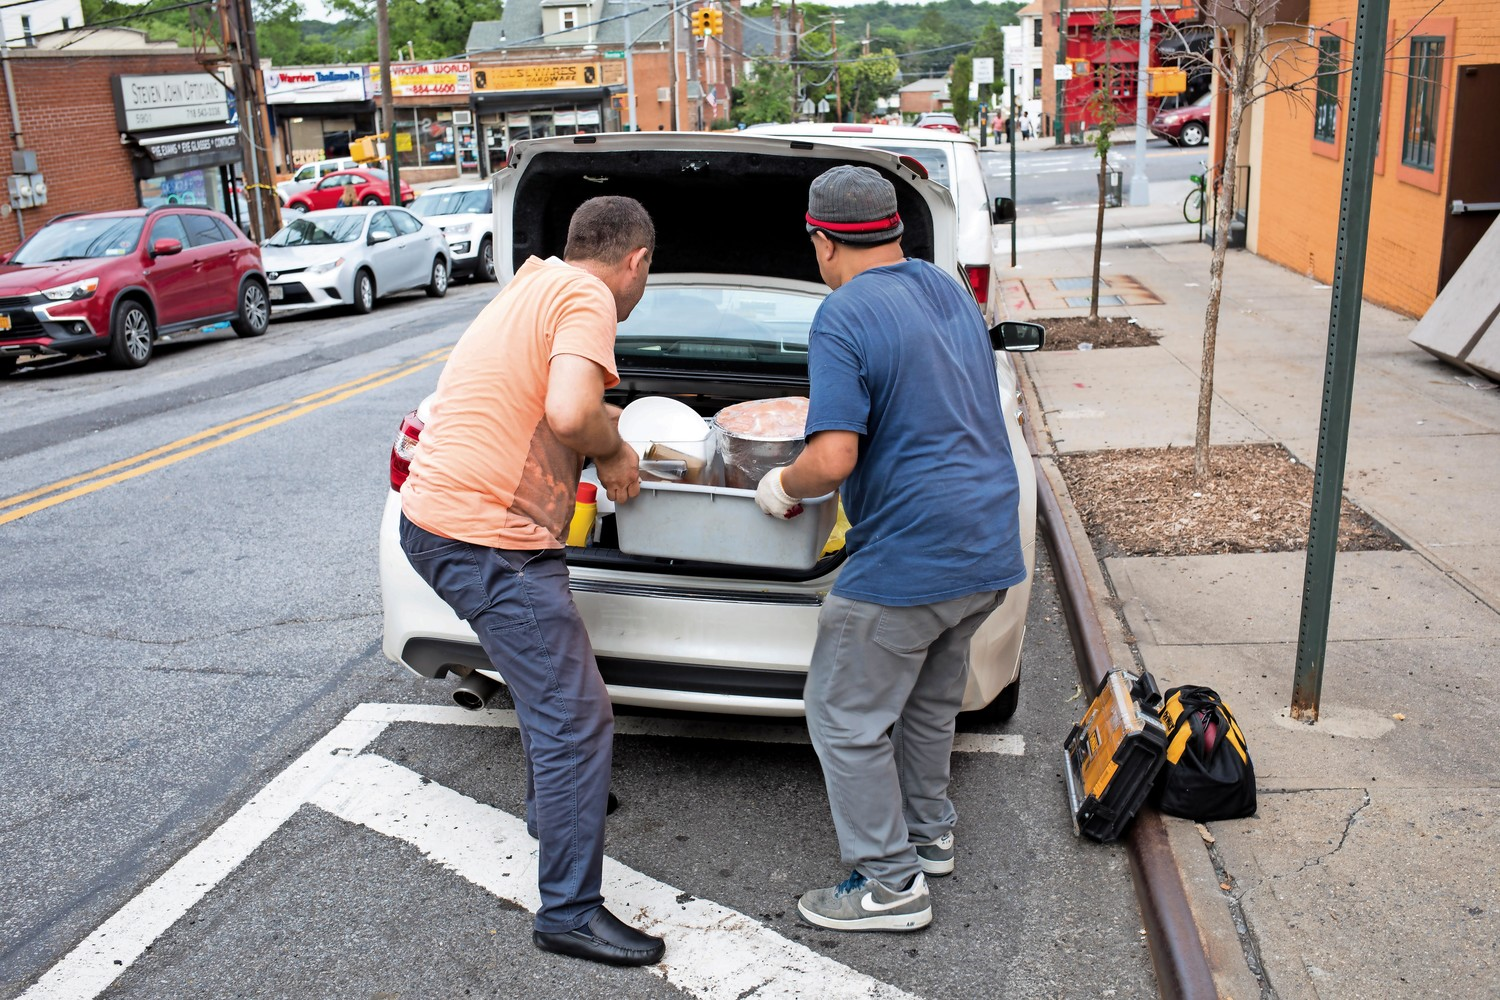 People load kitchen appliances and raw food into the back of a car outside K Grill House, which closed down for unspecified reasons.